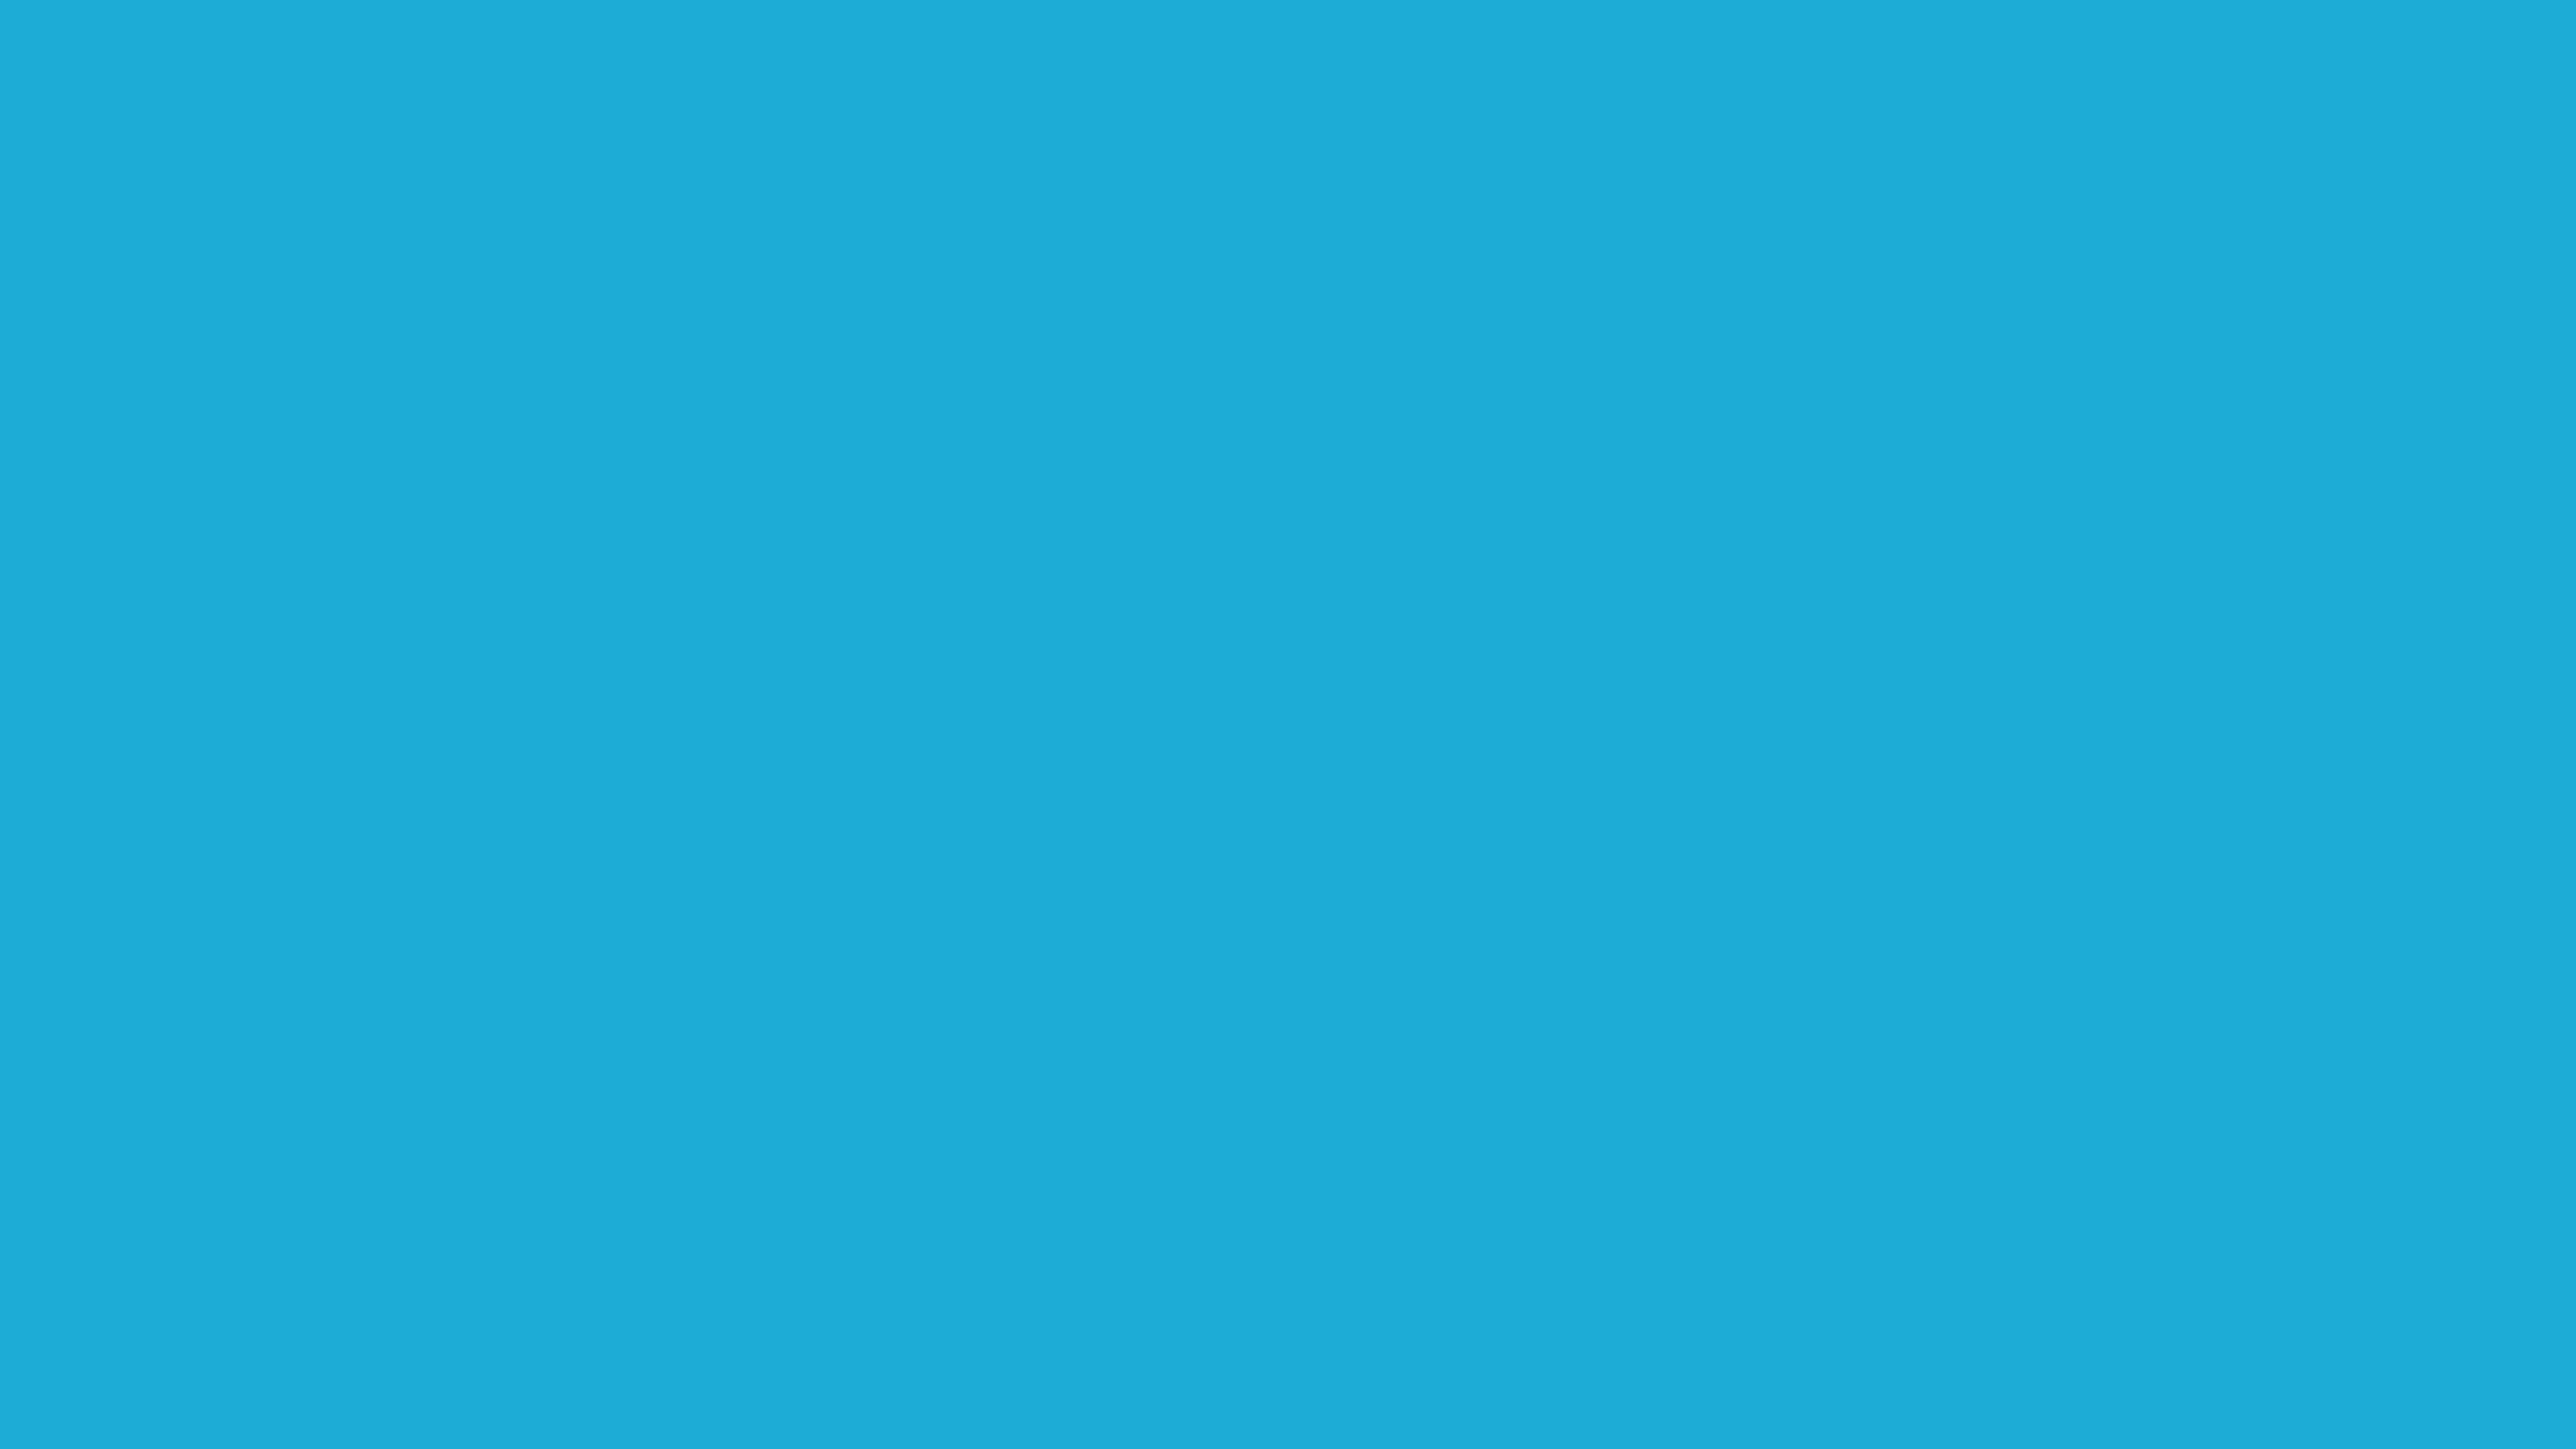 5120x2880 Bright Cerulean Solid Color Background